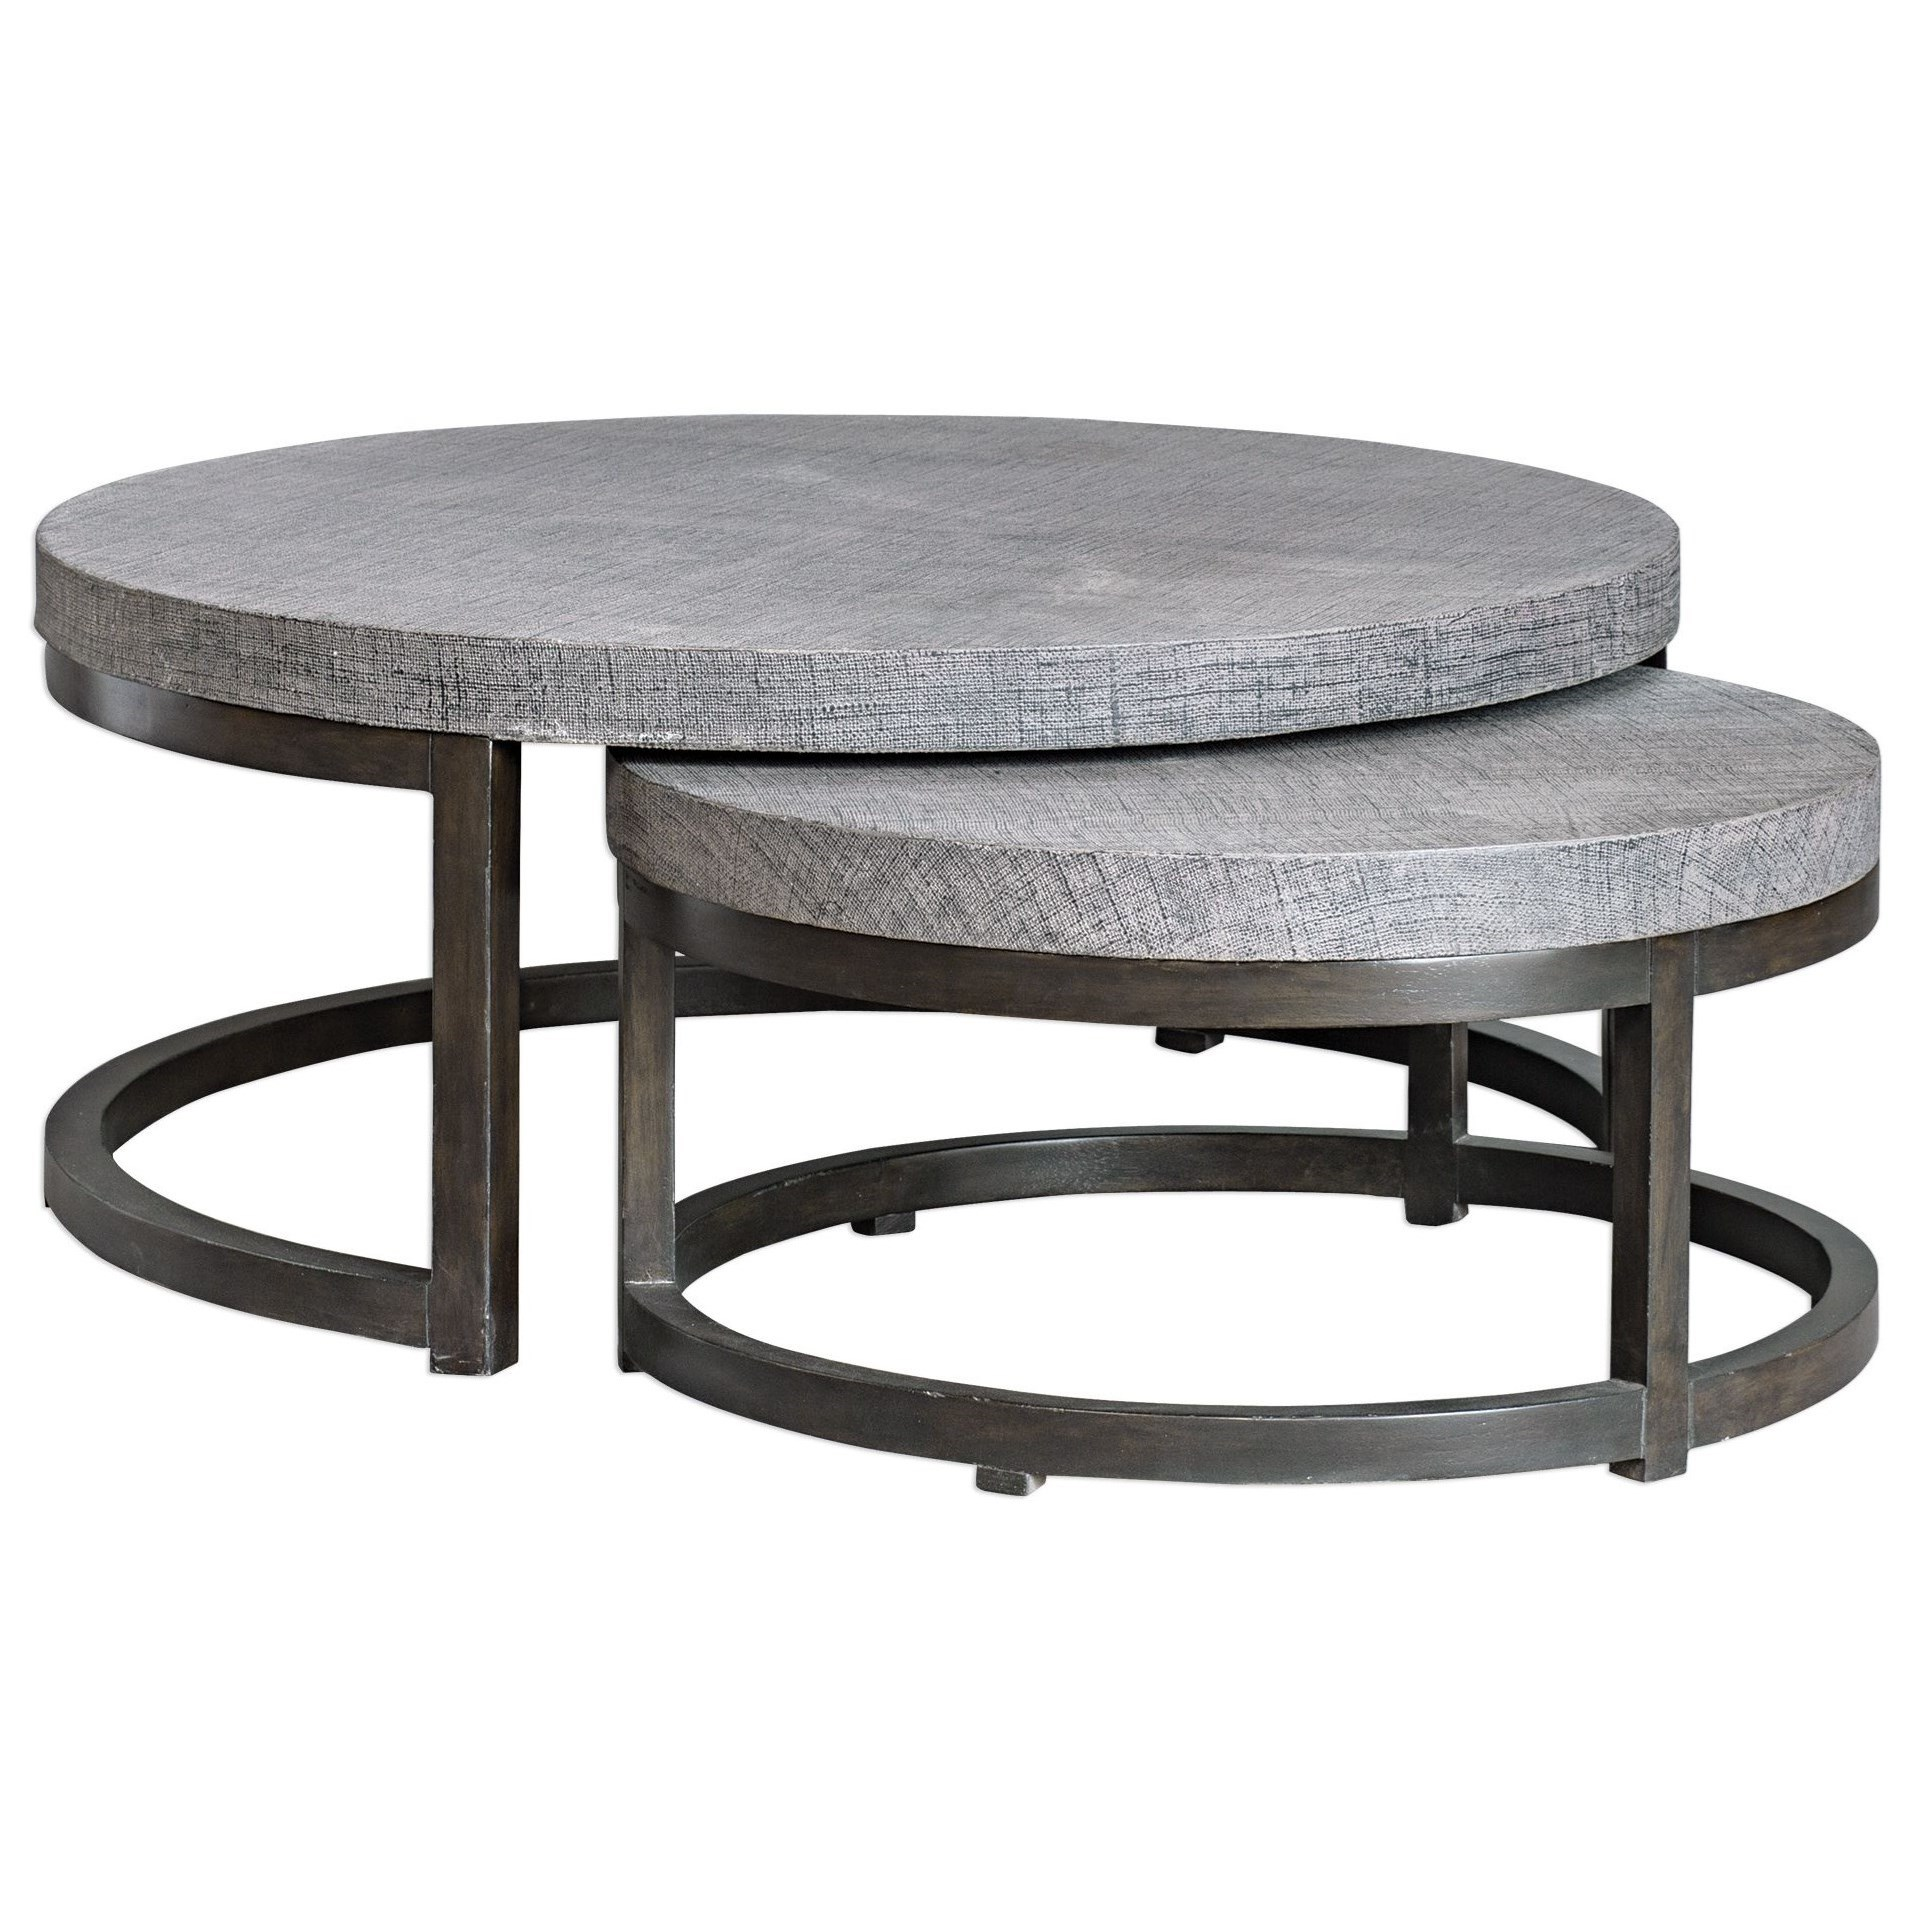 Accent Furniture - Occasional Tables Aiyara Gray Nesting Tables, S/2 by Uttermost at Reid's Furniture